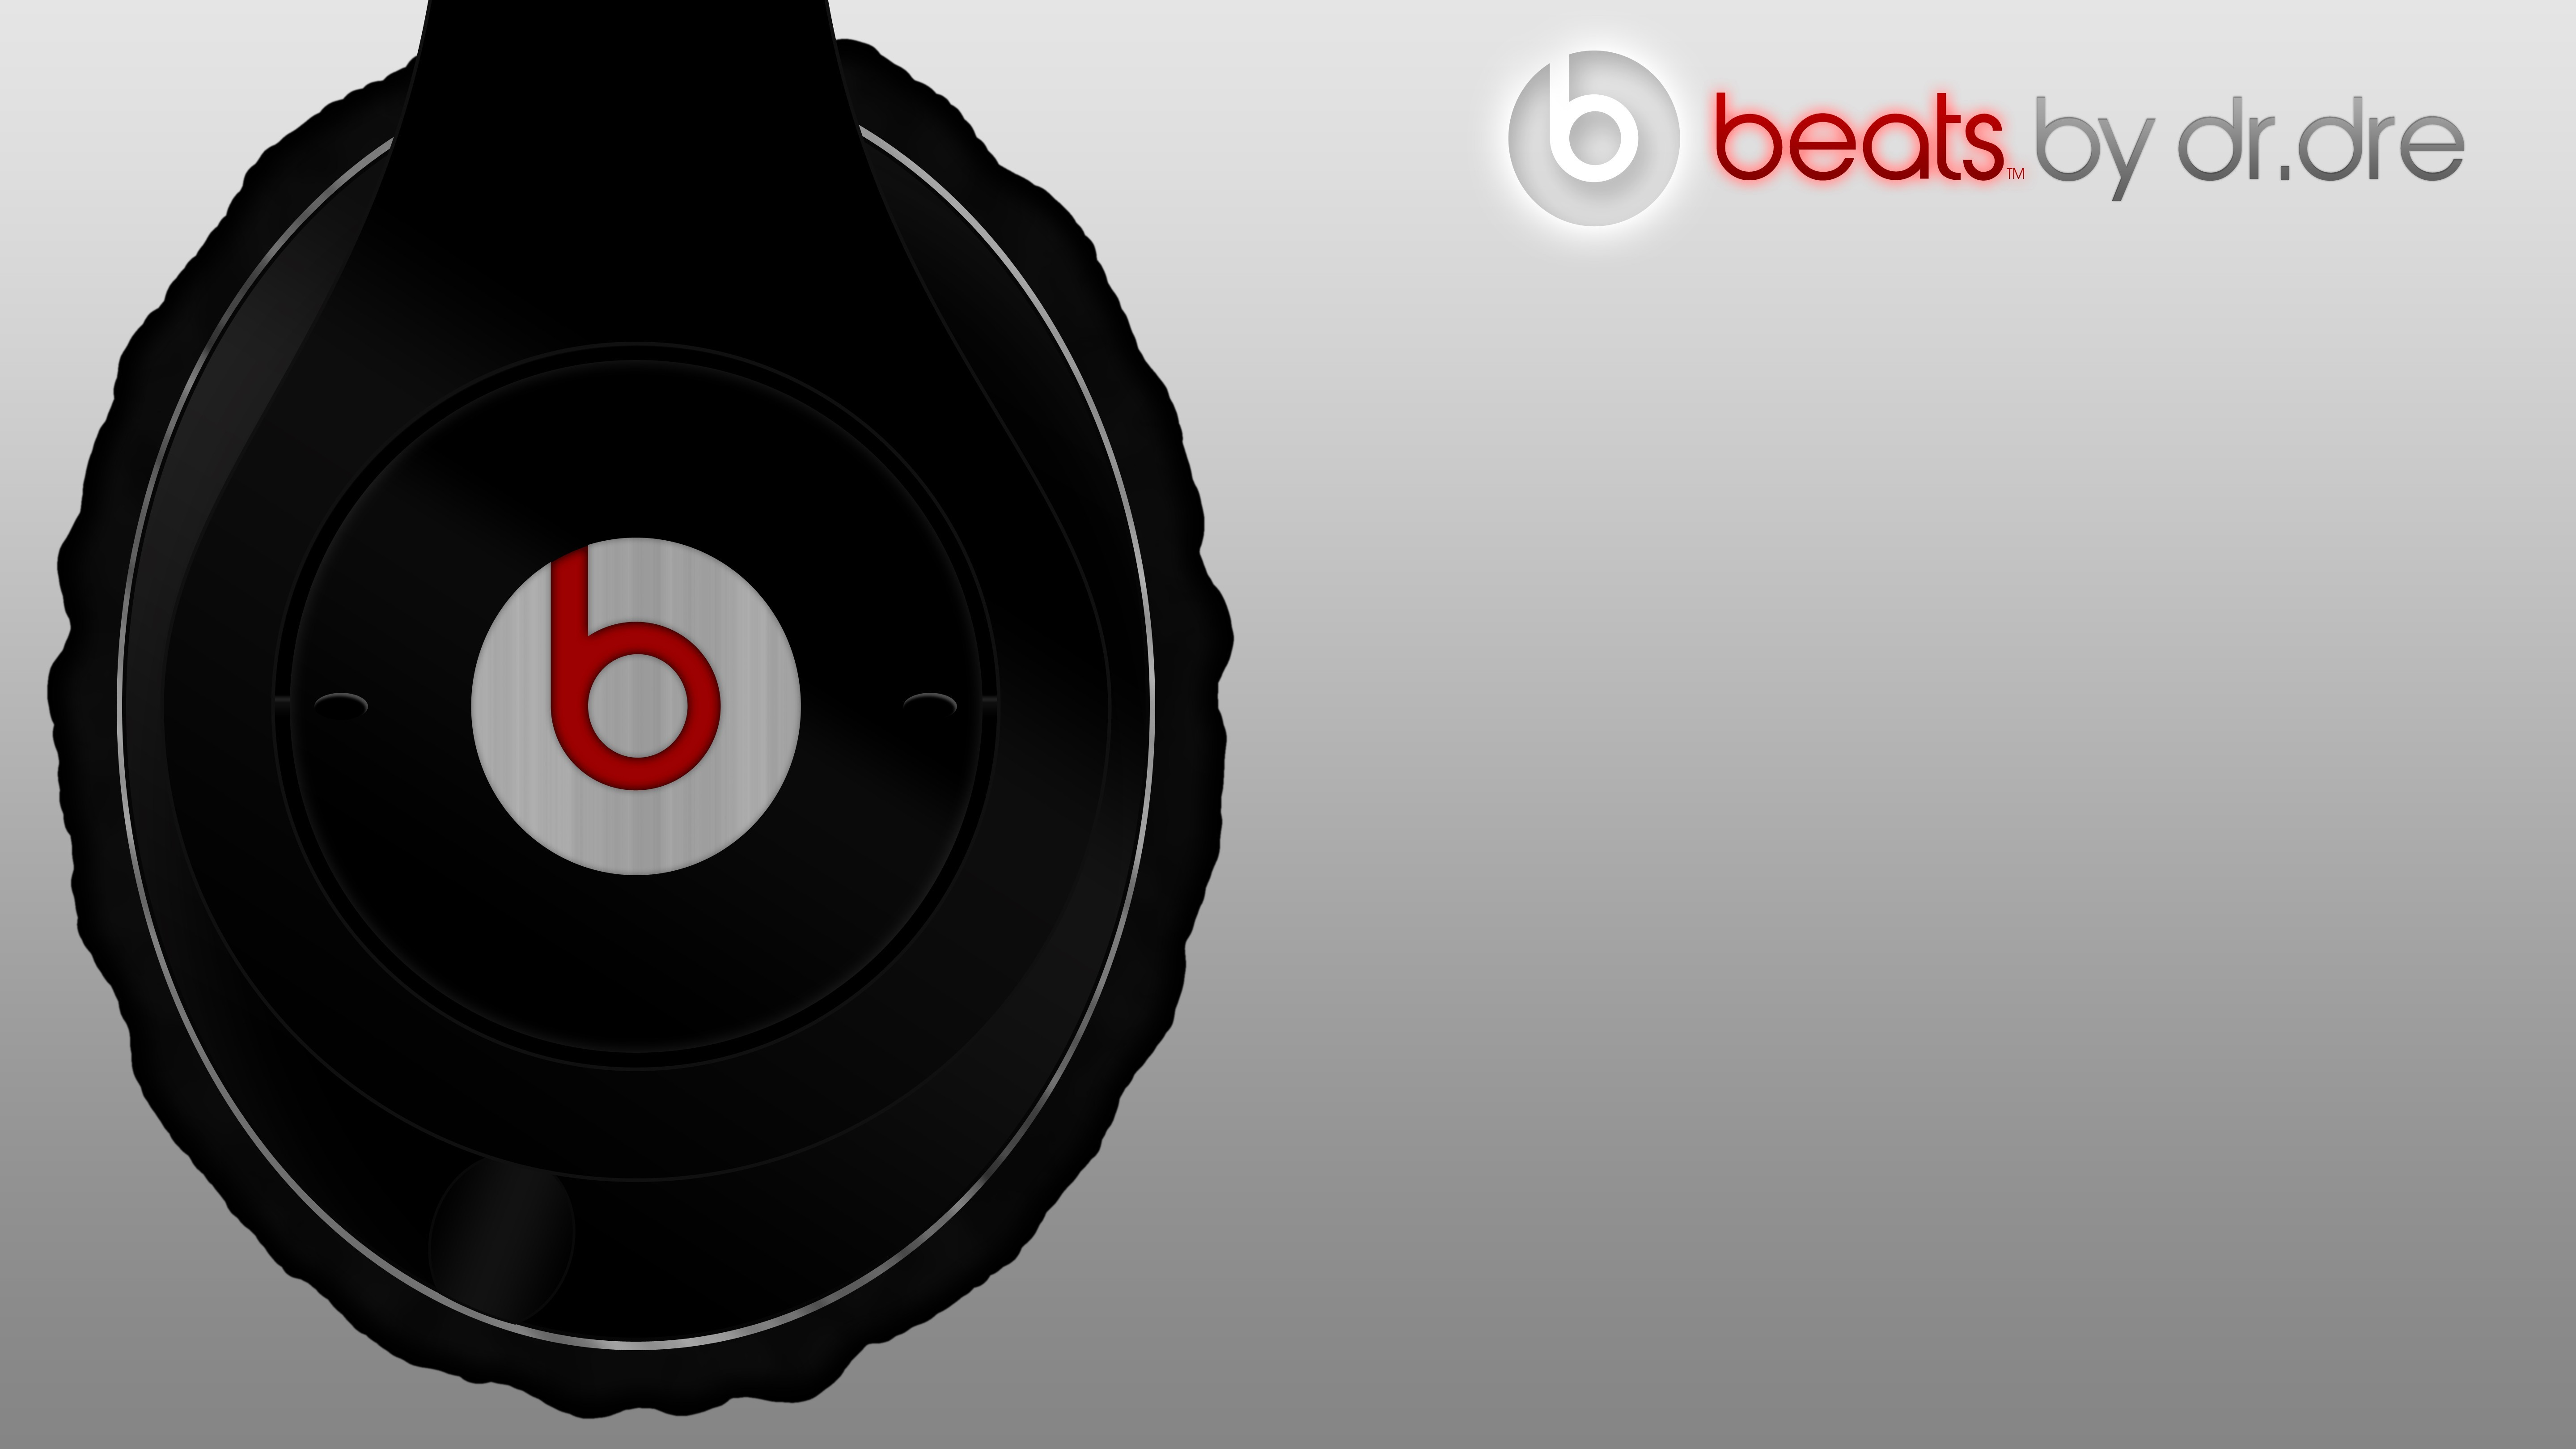 headphones sweden beat beats HD Wallpaper